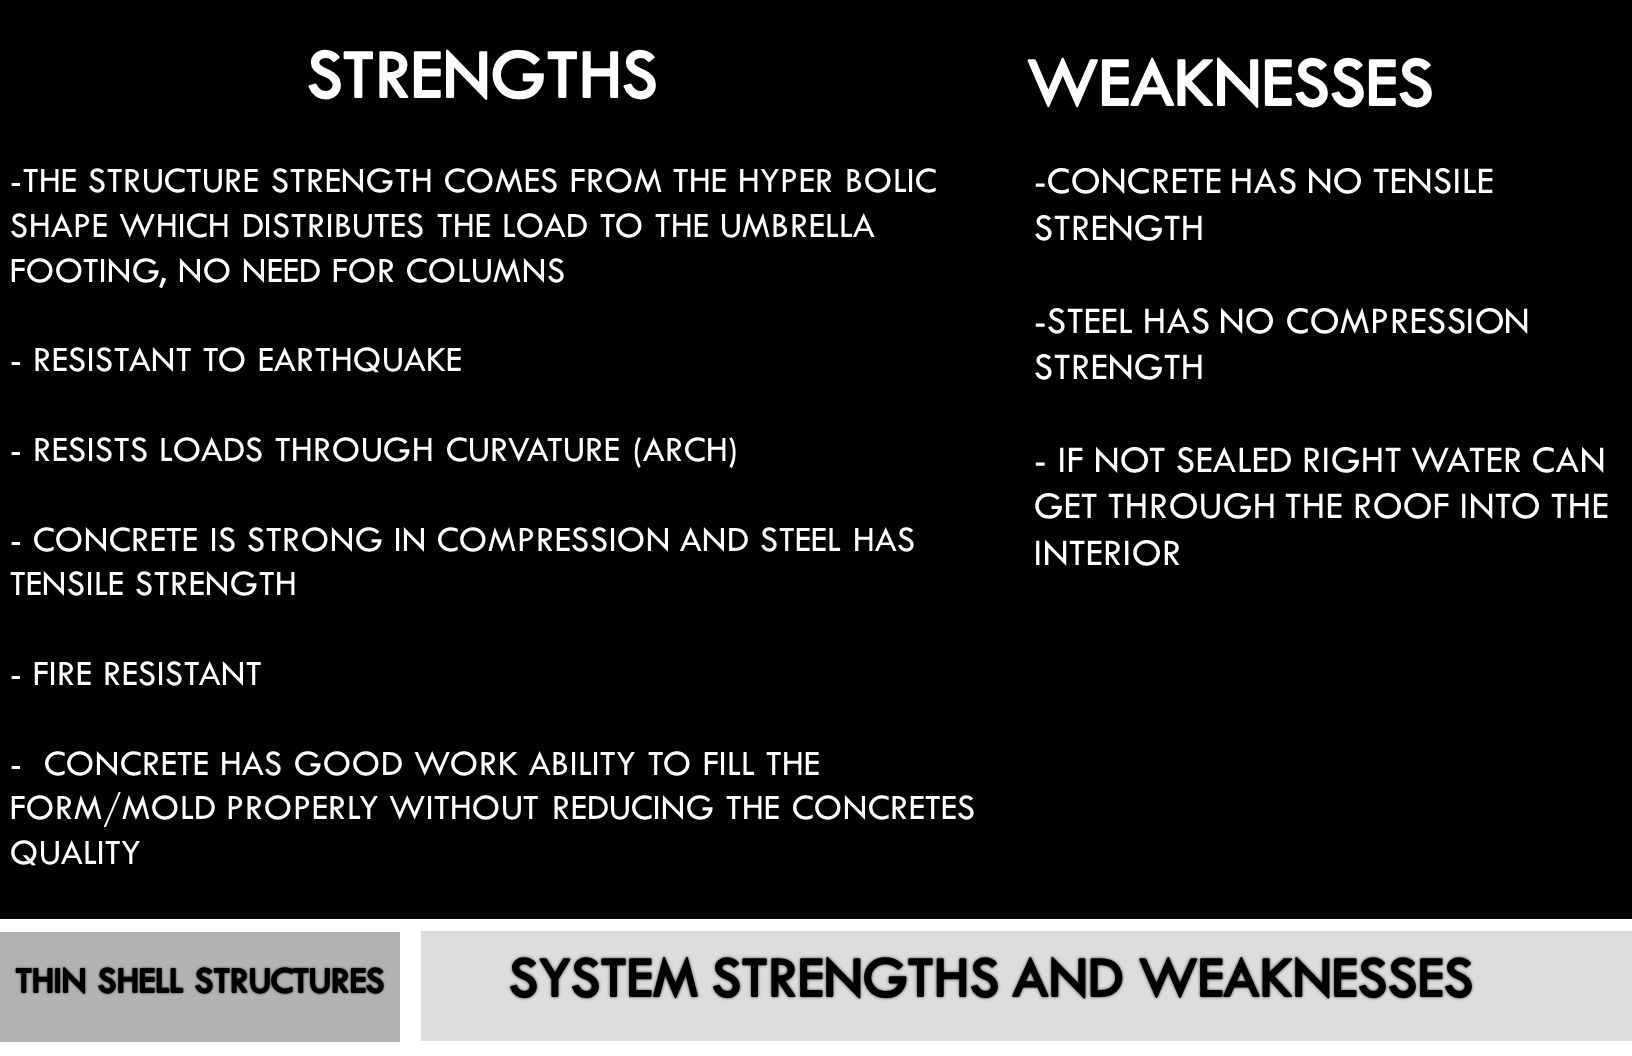 SYSTEM STRENGTHS AND WEAKNESSES